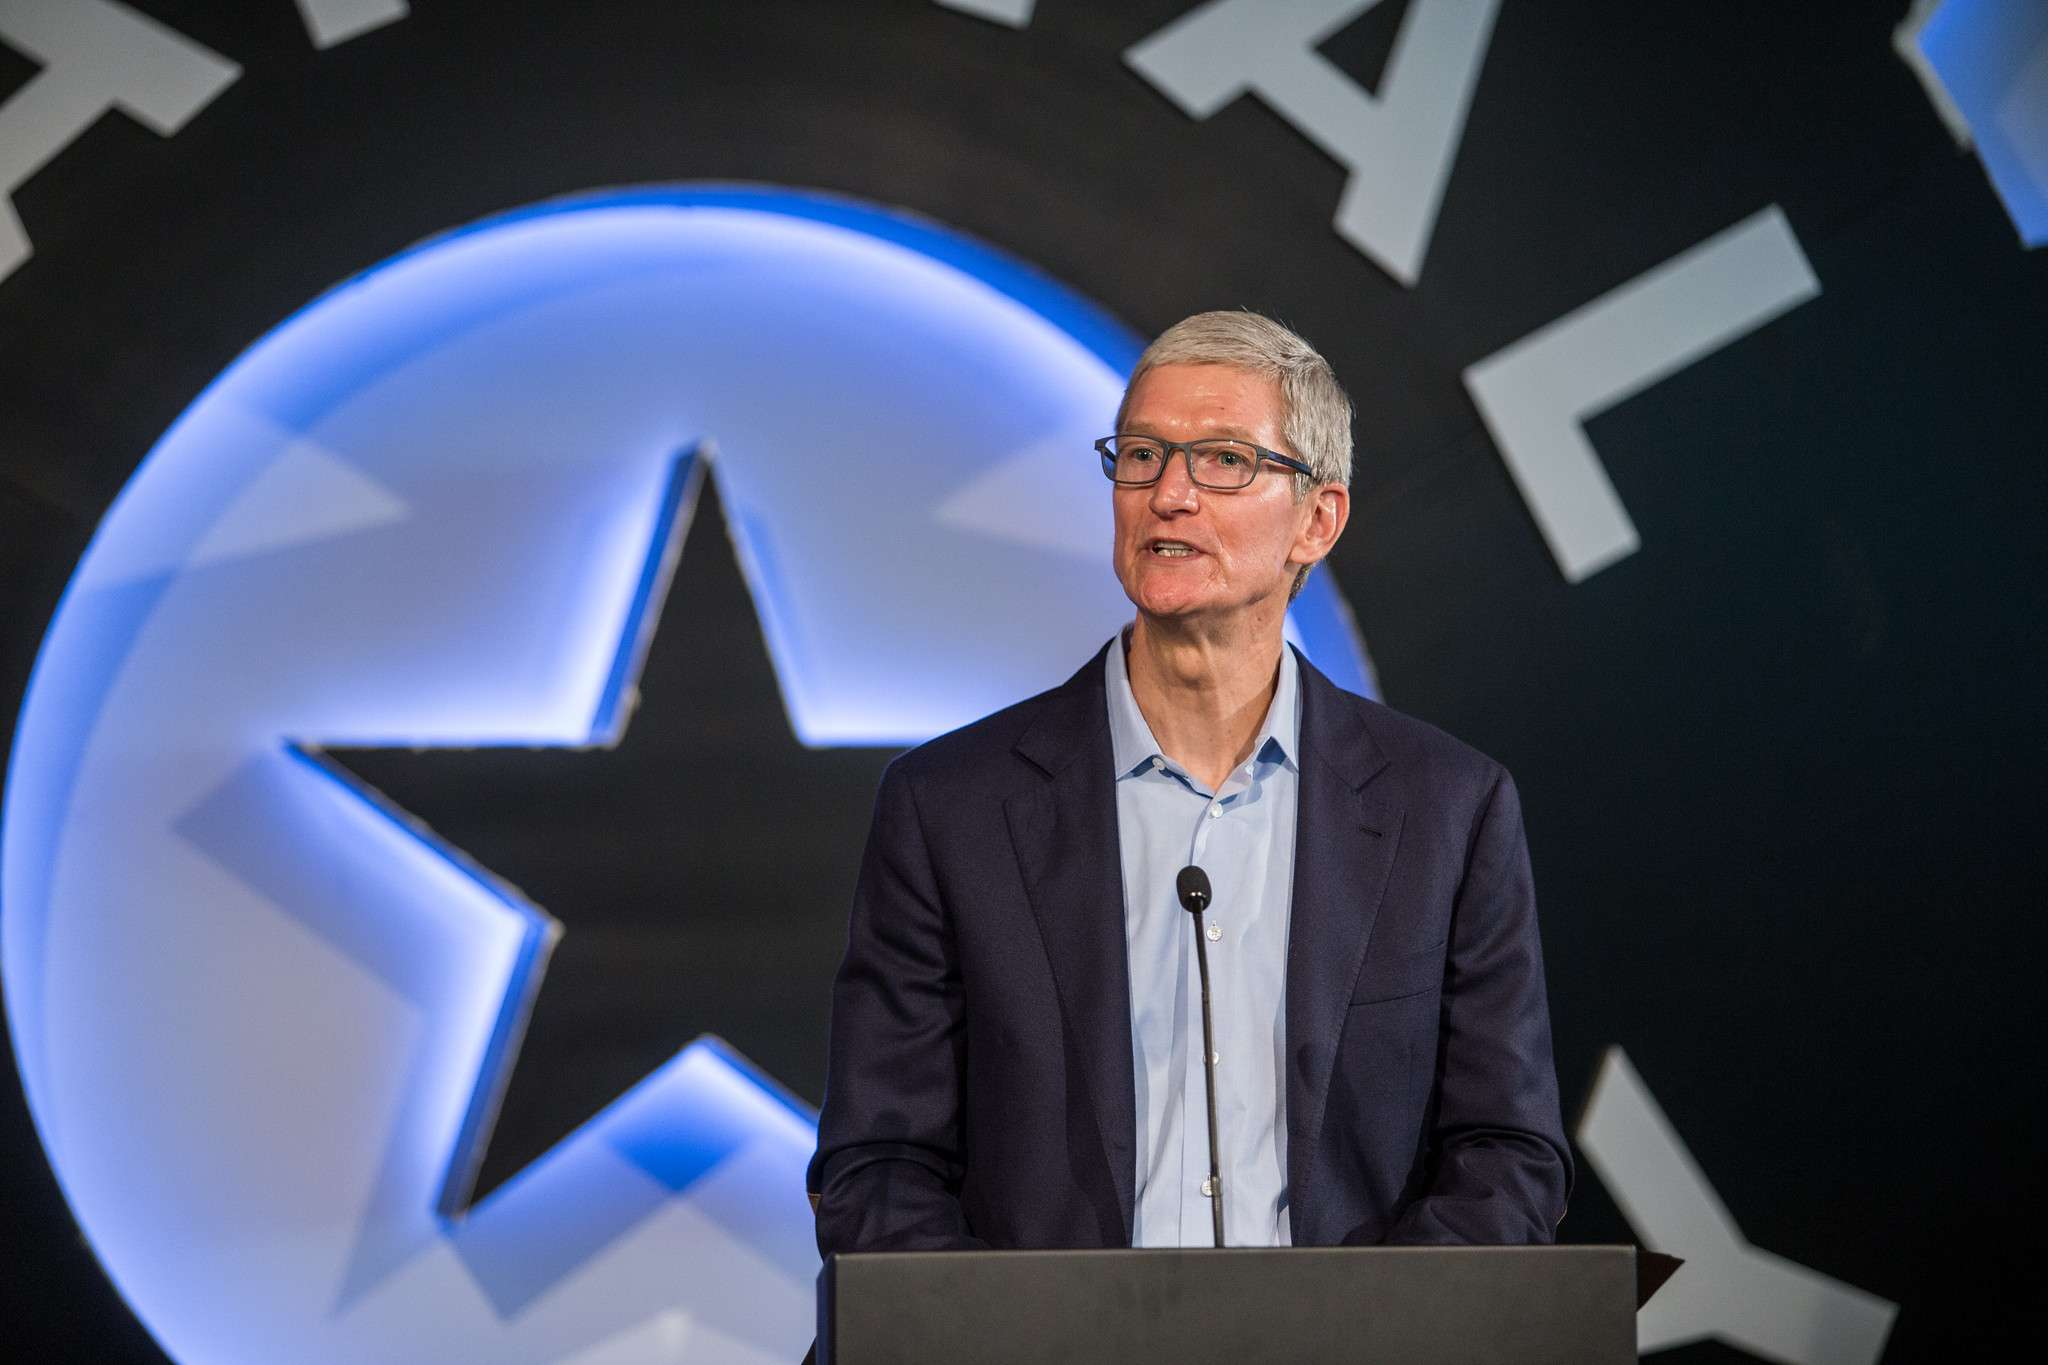 Apple CEO Tim Cook speaks at the Capital Factory in Austin, Texas on an app development partnership with Austin Community College on Friday, August 25, 2017. (Image Credit: Austin Community College)